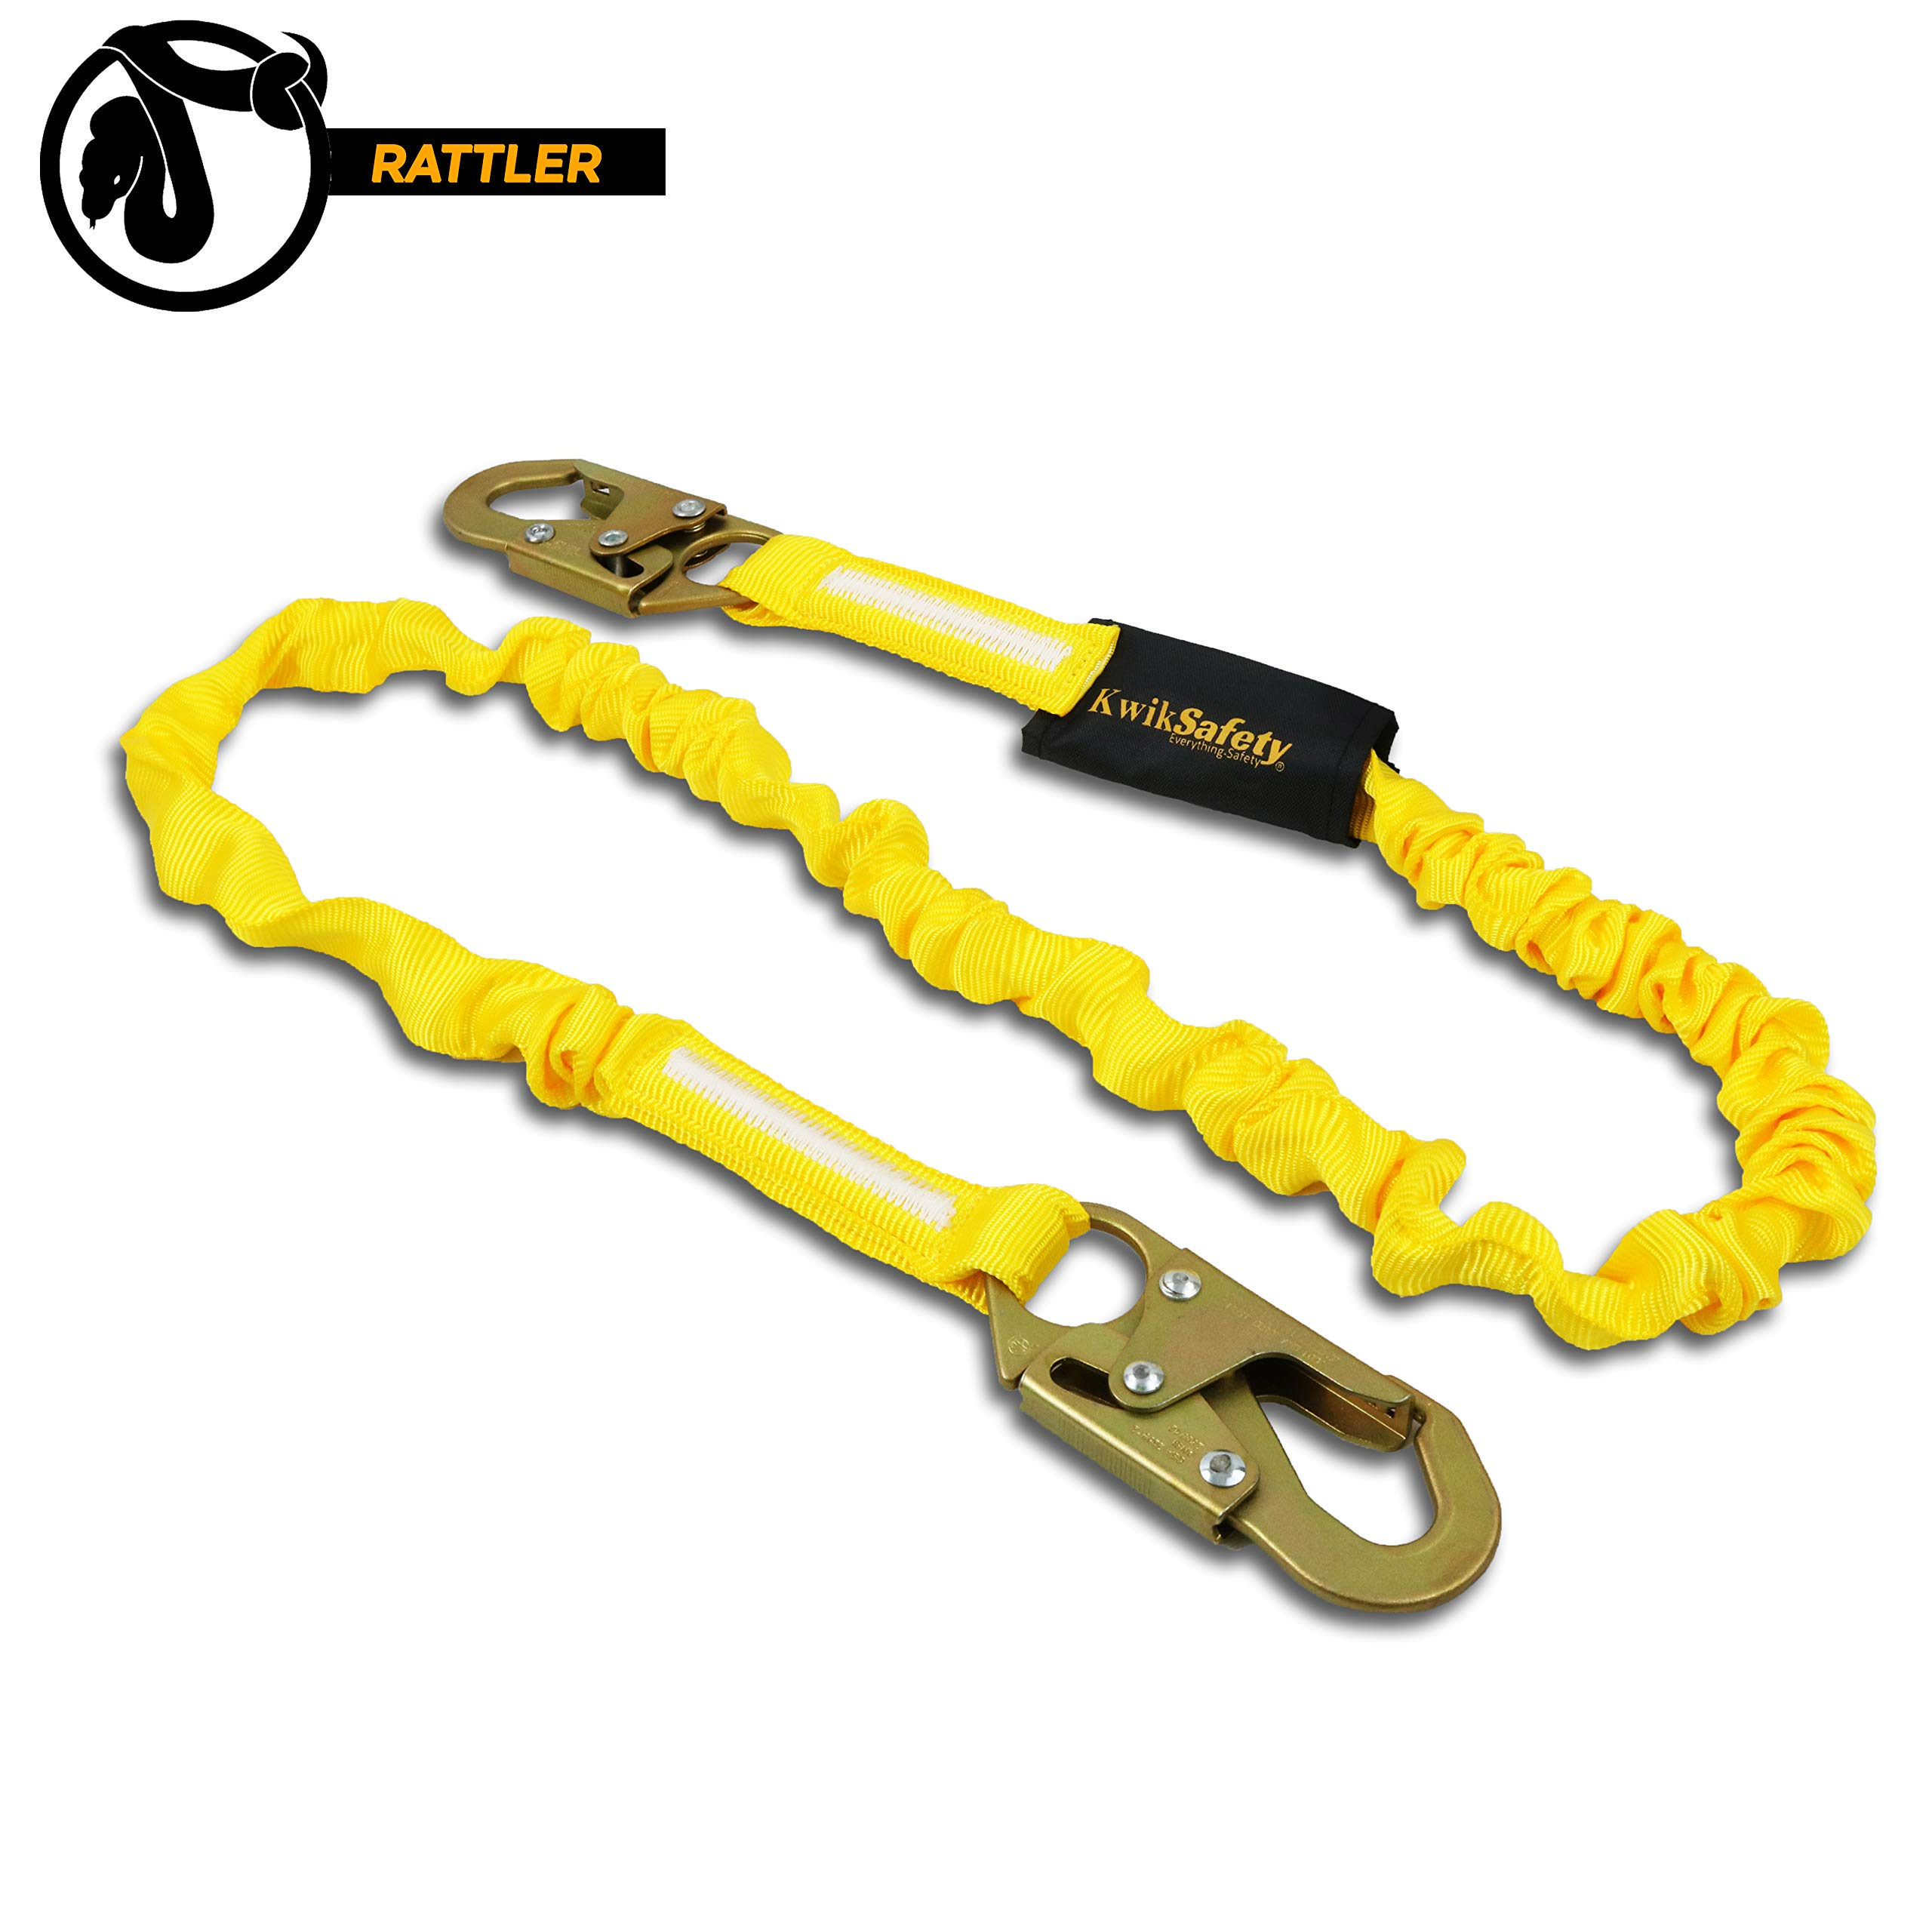 KwikSafety (Charlotte, NC) RATTLER 1 PACK (Internal Shock Absorber) Single Leg 6ft Safety Lanyard, Tool Lanyard OSHA ANSI Fall Protection Equipment Snap Hooks Construction Arborist Roofing by KwikSafety